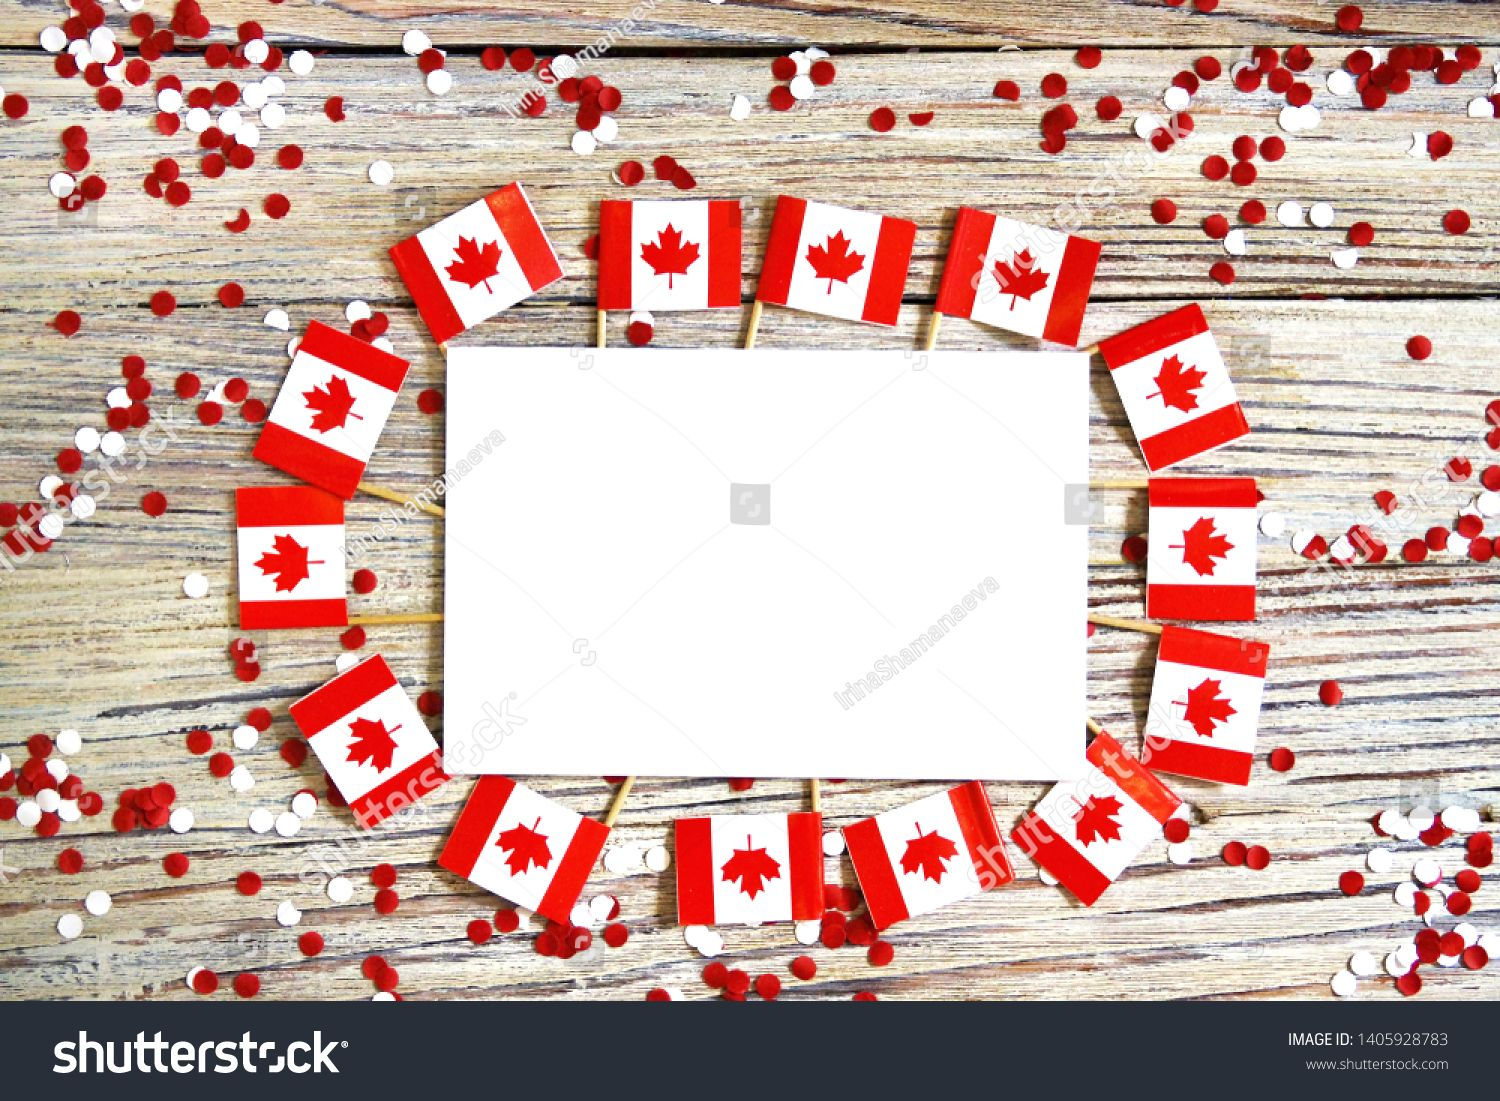 The national holiday of July 1 happy Canada day